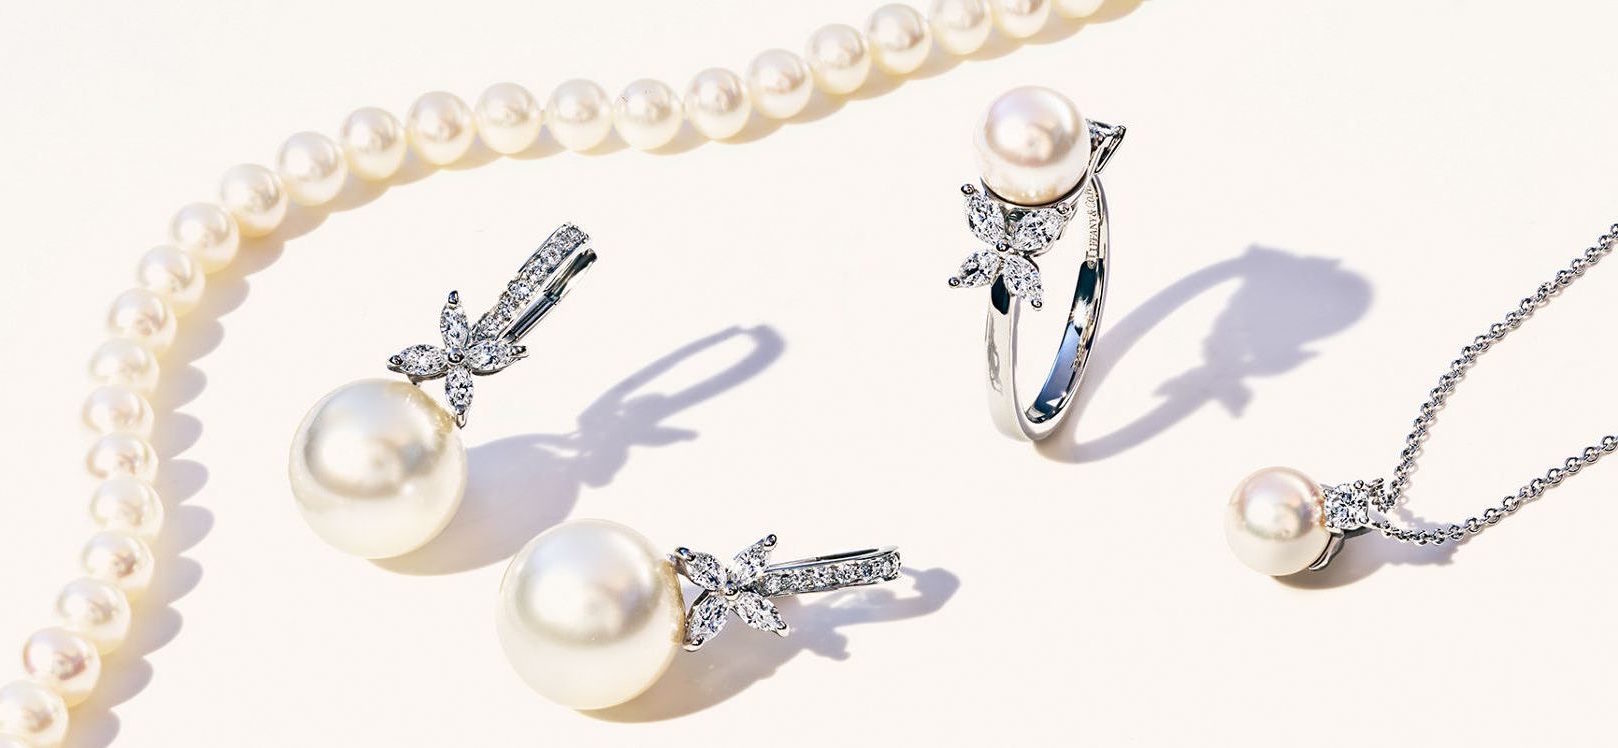 June Birthstone: Tiffany & Co.